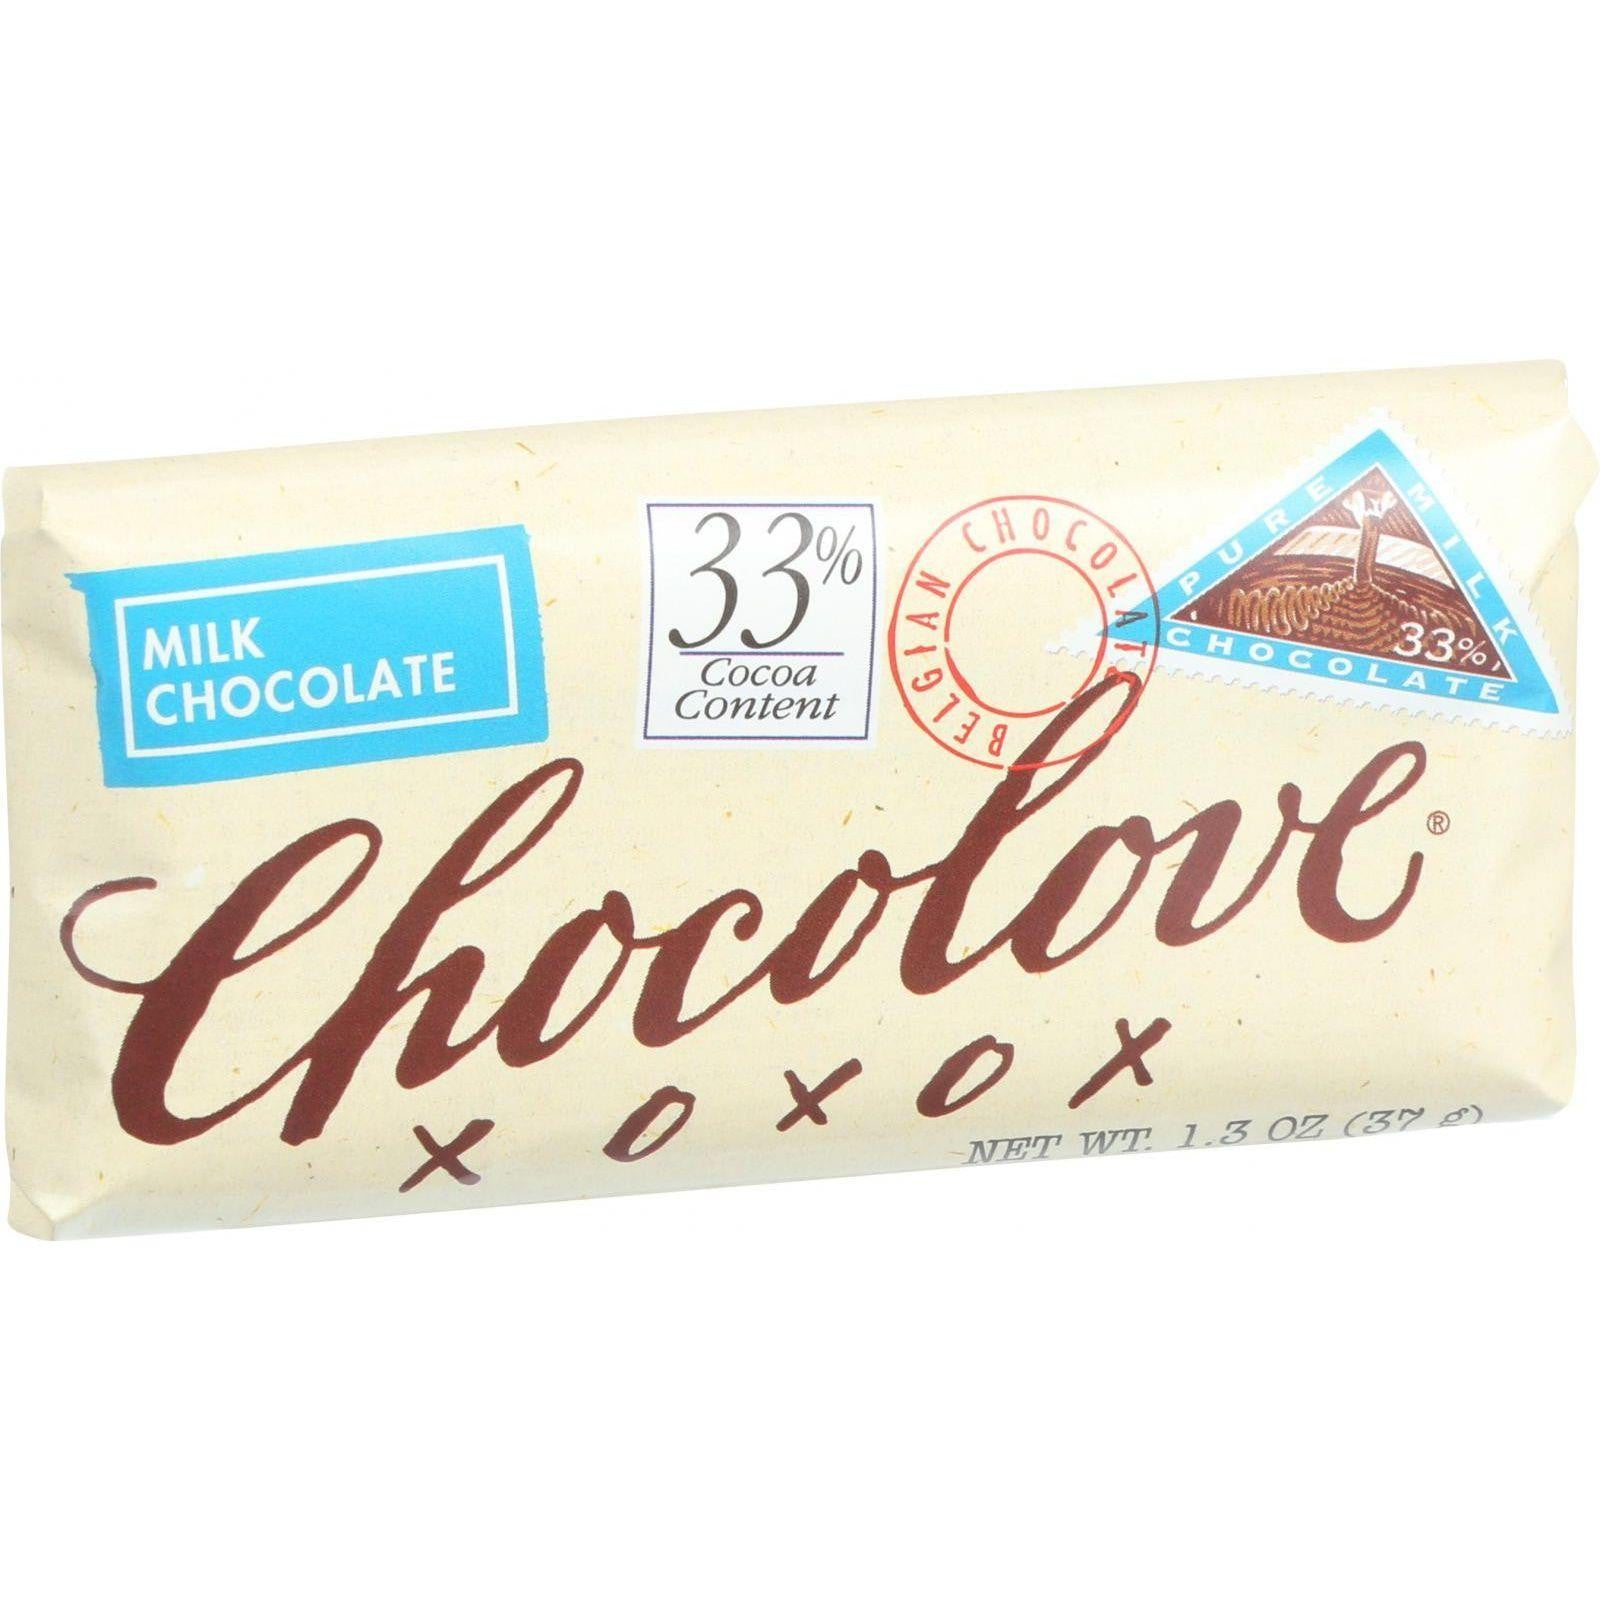 Chocolove xoxox Mini Bars - Pure Milk Chocolate